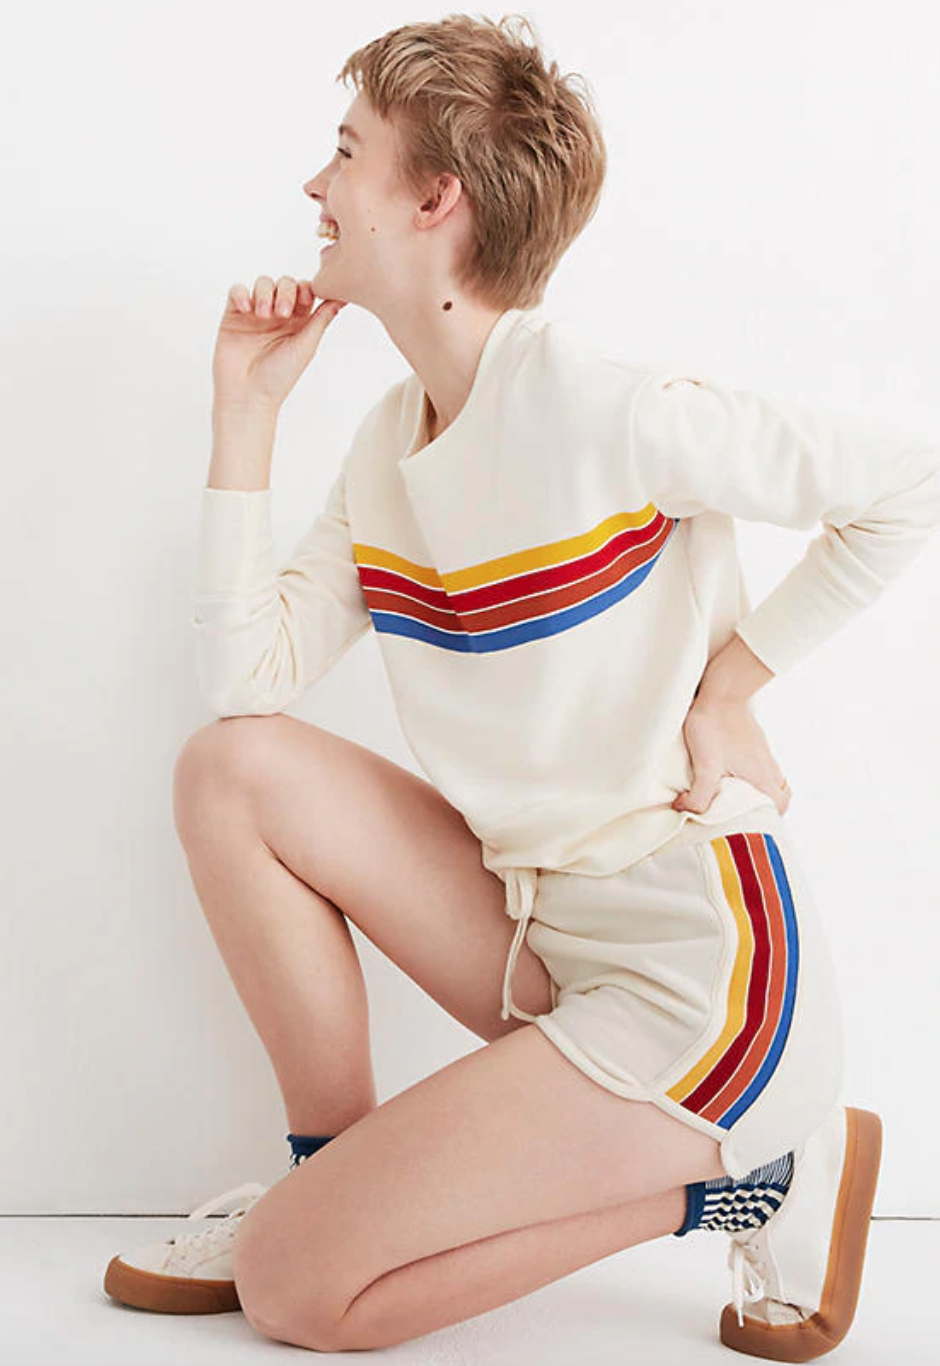 """<br> <br> <strong>Madewell</strong> Rainbow-Inset Sweatshorts, $, available at <a href=""""https://go.skimresources.com/?id=30283X879131&url=https%3A%2F%2Fwww.madewell.com%2Frainbow-inset-sweatshorts-AI509.html%3Fcolor%3DKF0398%23q%3Dsweatshort%26lang%3Ddefault%26start%3D1"""" rel=""""nofollow noopener"""" target=""""_blank"""" data-ylk=""""slk:Madewell"""" class=""""link rapid-noclick-resp"""">Madewell</a>"""